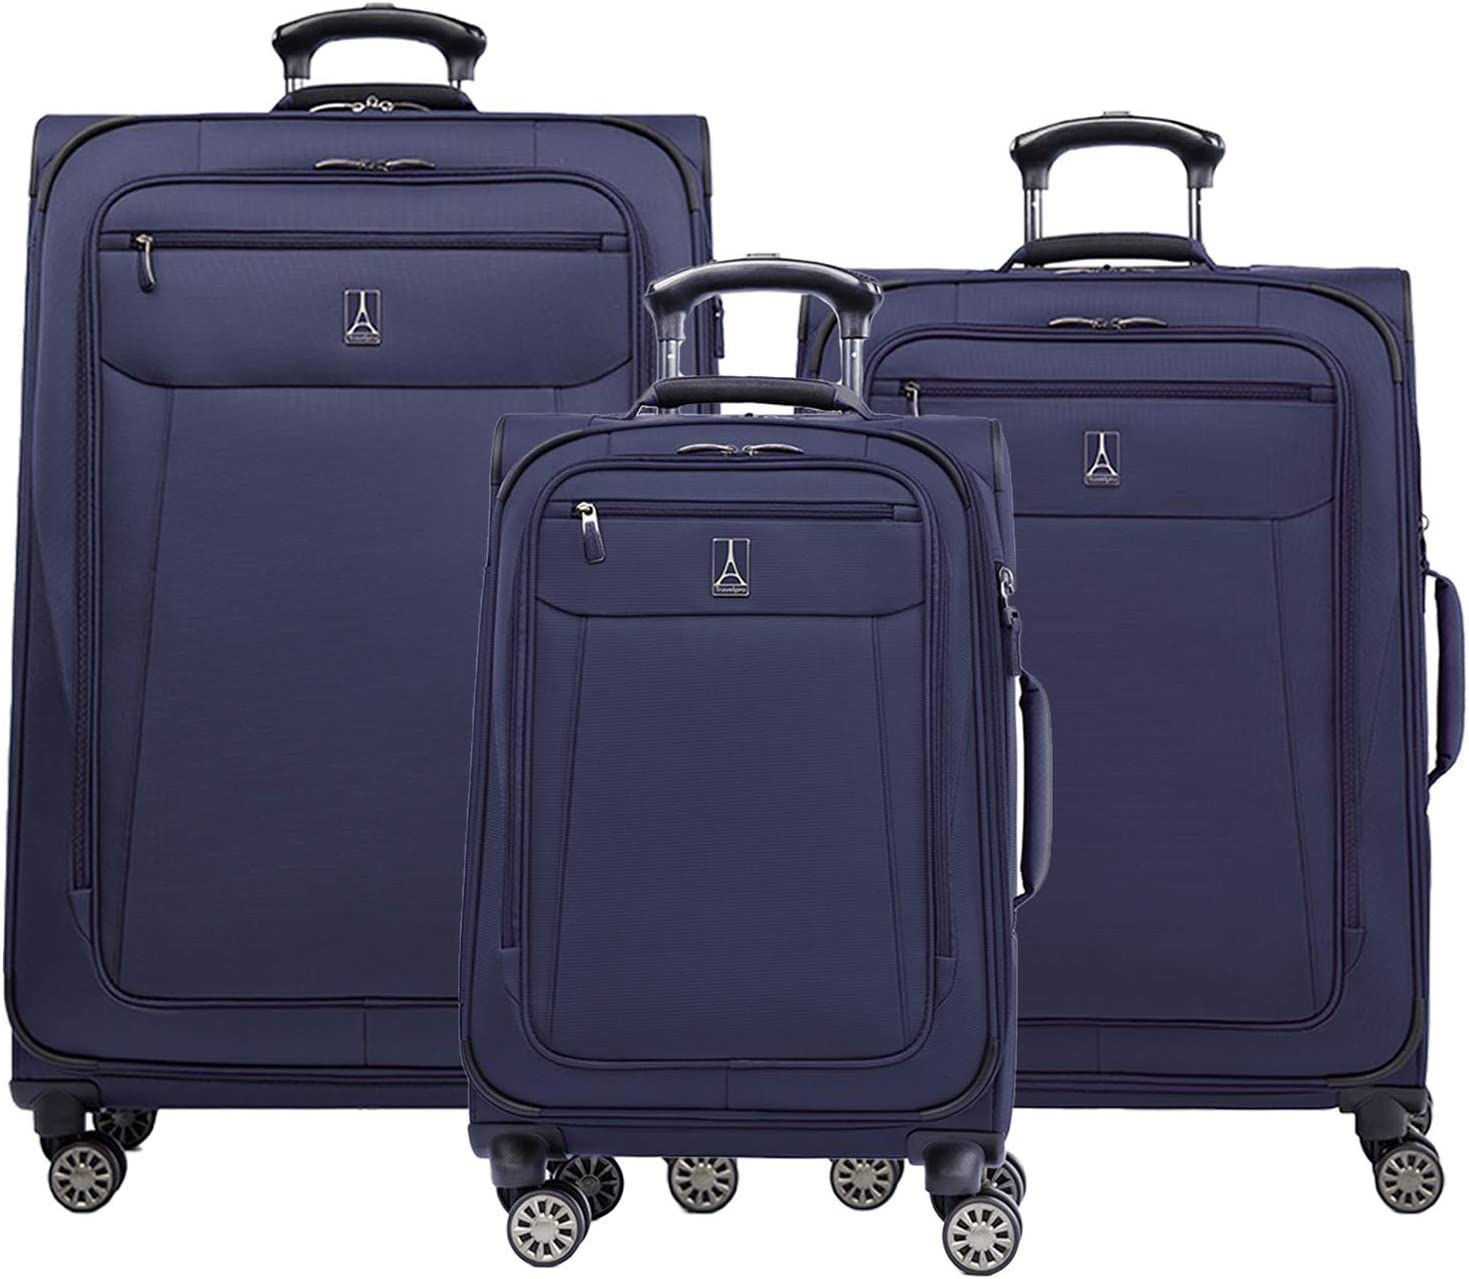 Max 57% OFF Travelpro Skywalk Limited 3 Piece Set Softsid Long Beach Mall Spinner - Suitcase